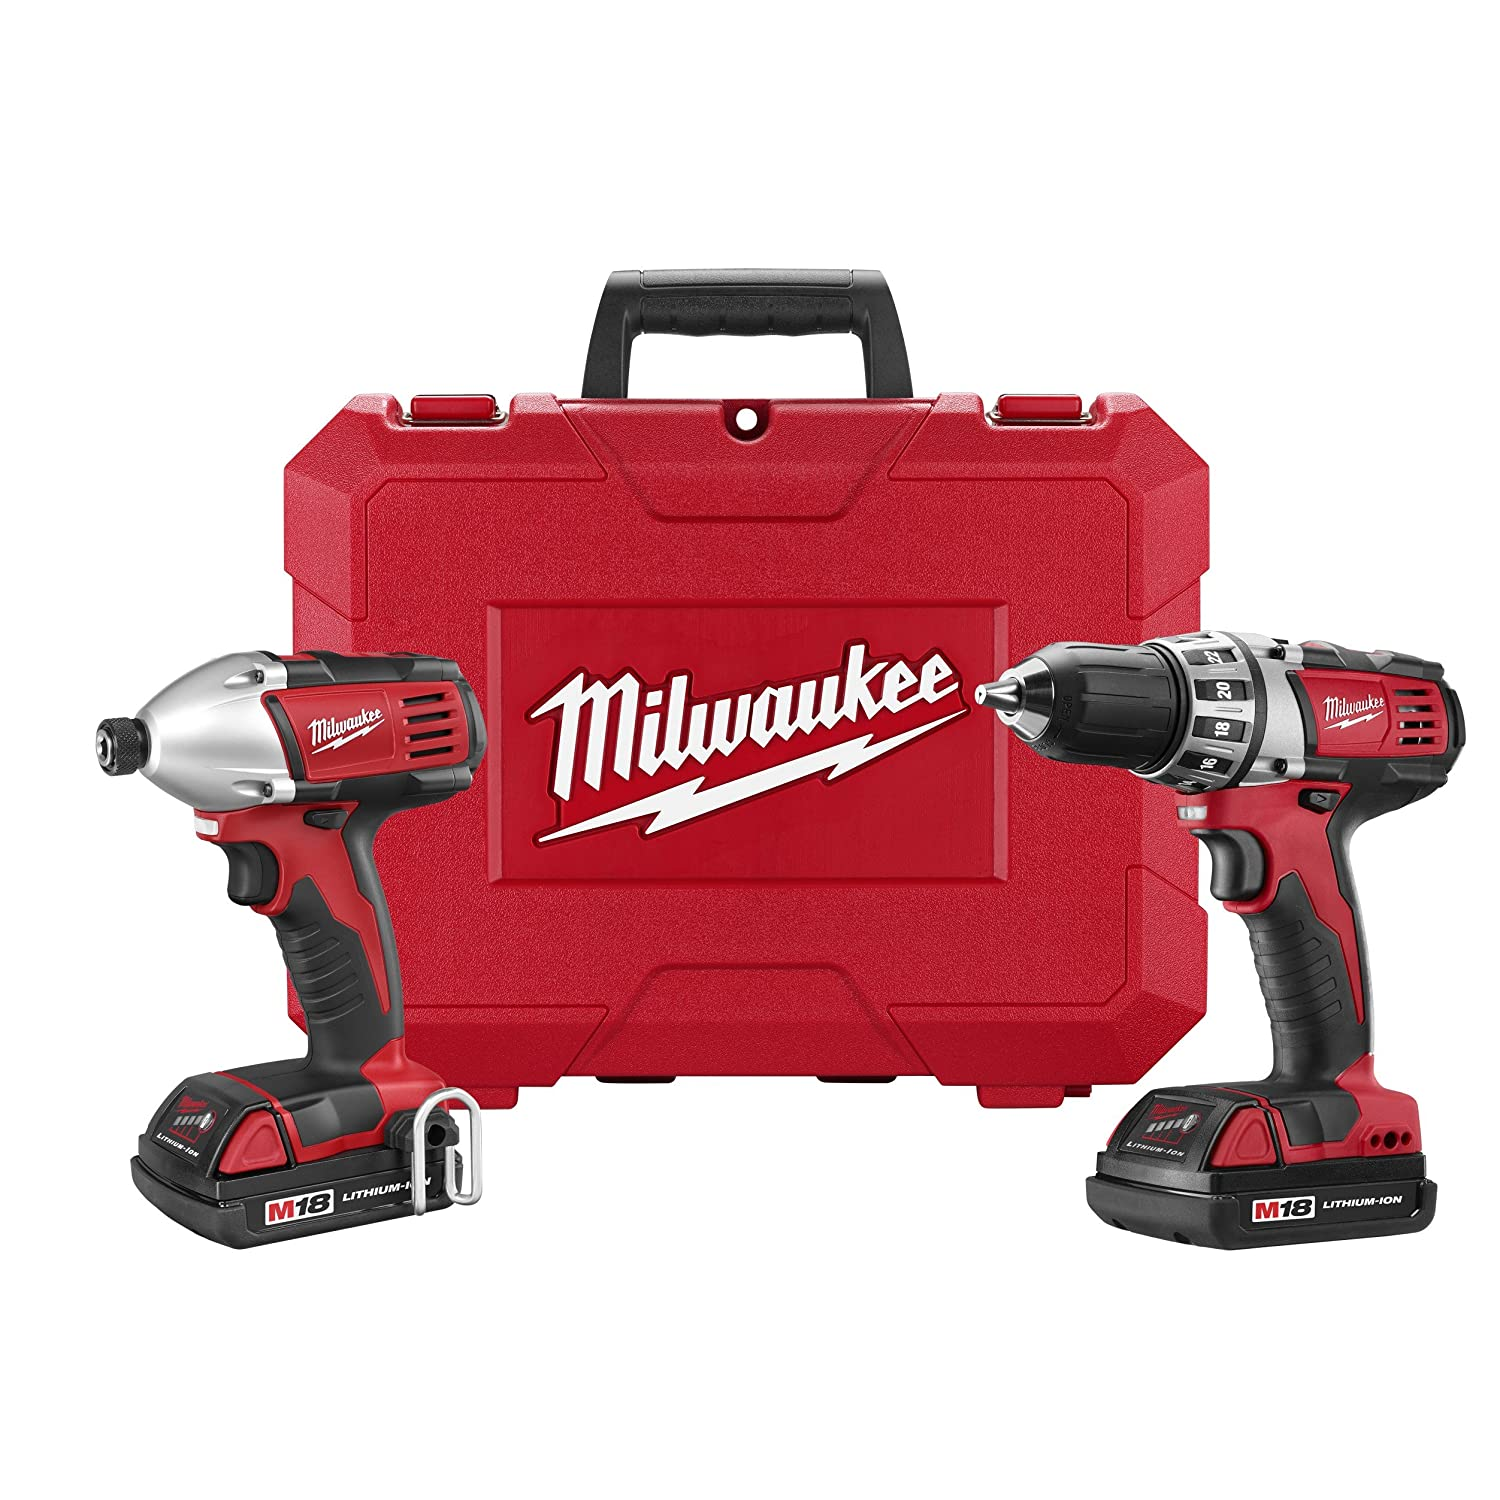 Milwaukee Drill & Driver Kit